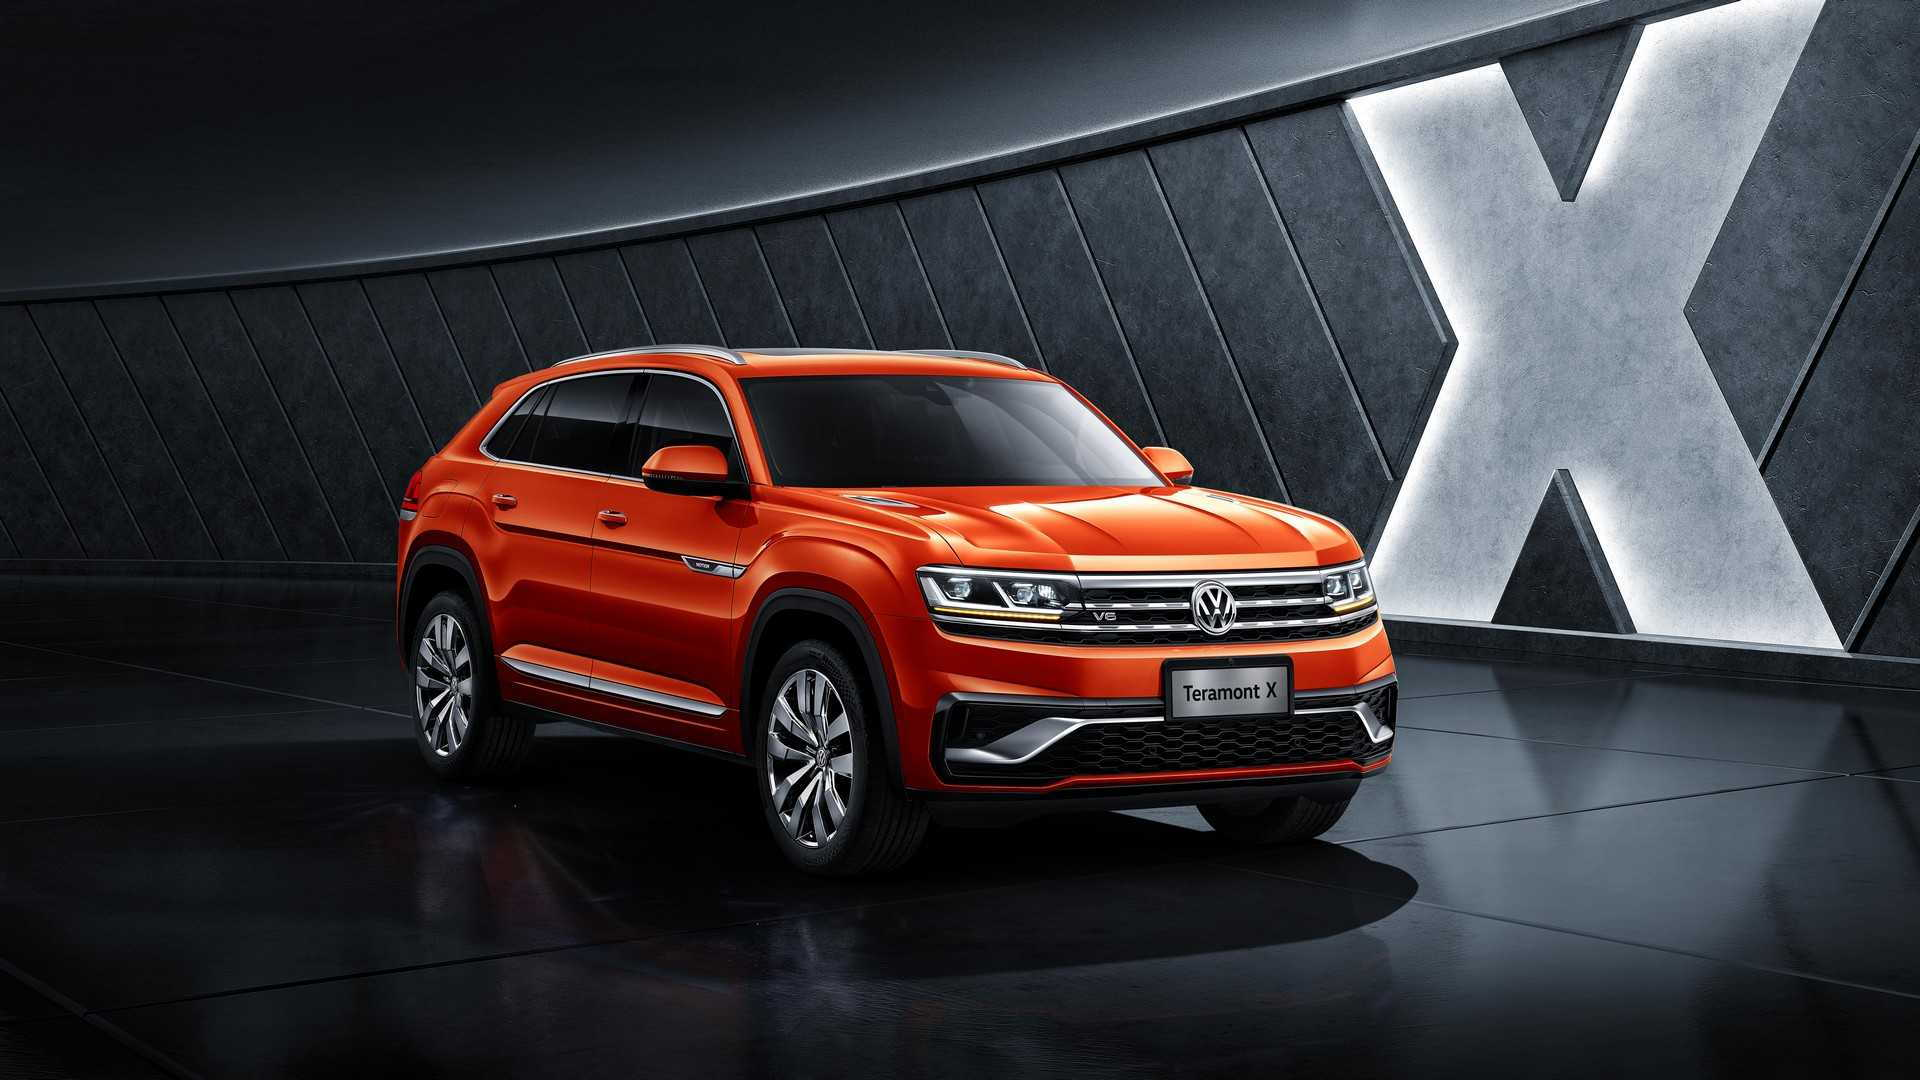 Vw S 2 Row Atlas Suv Shown In China As Teramont X